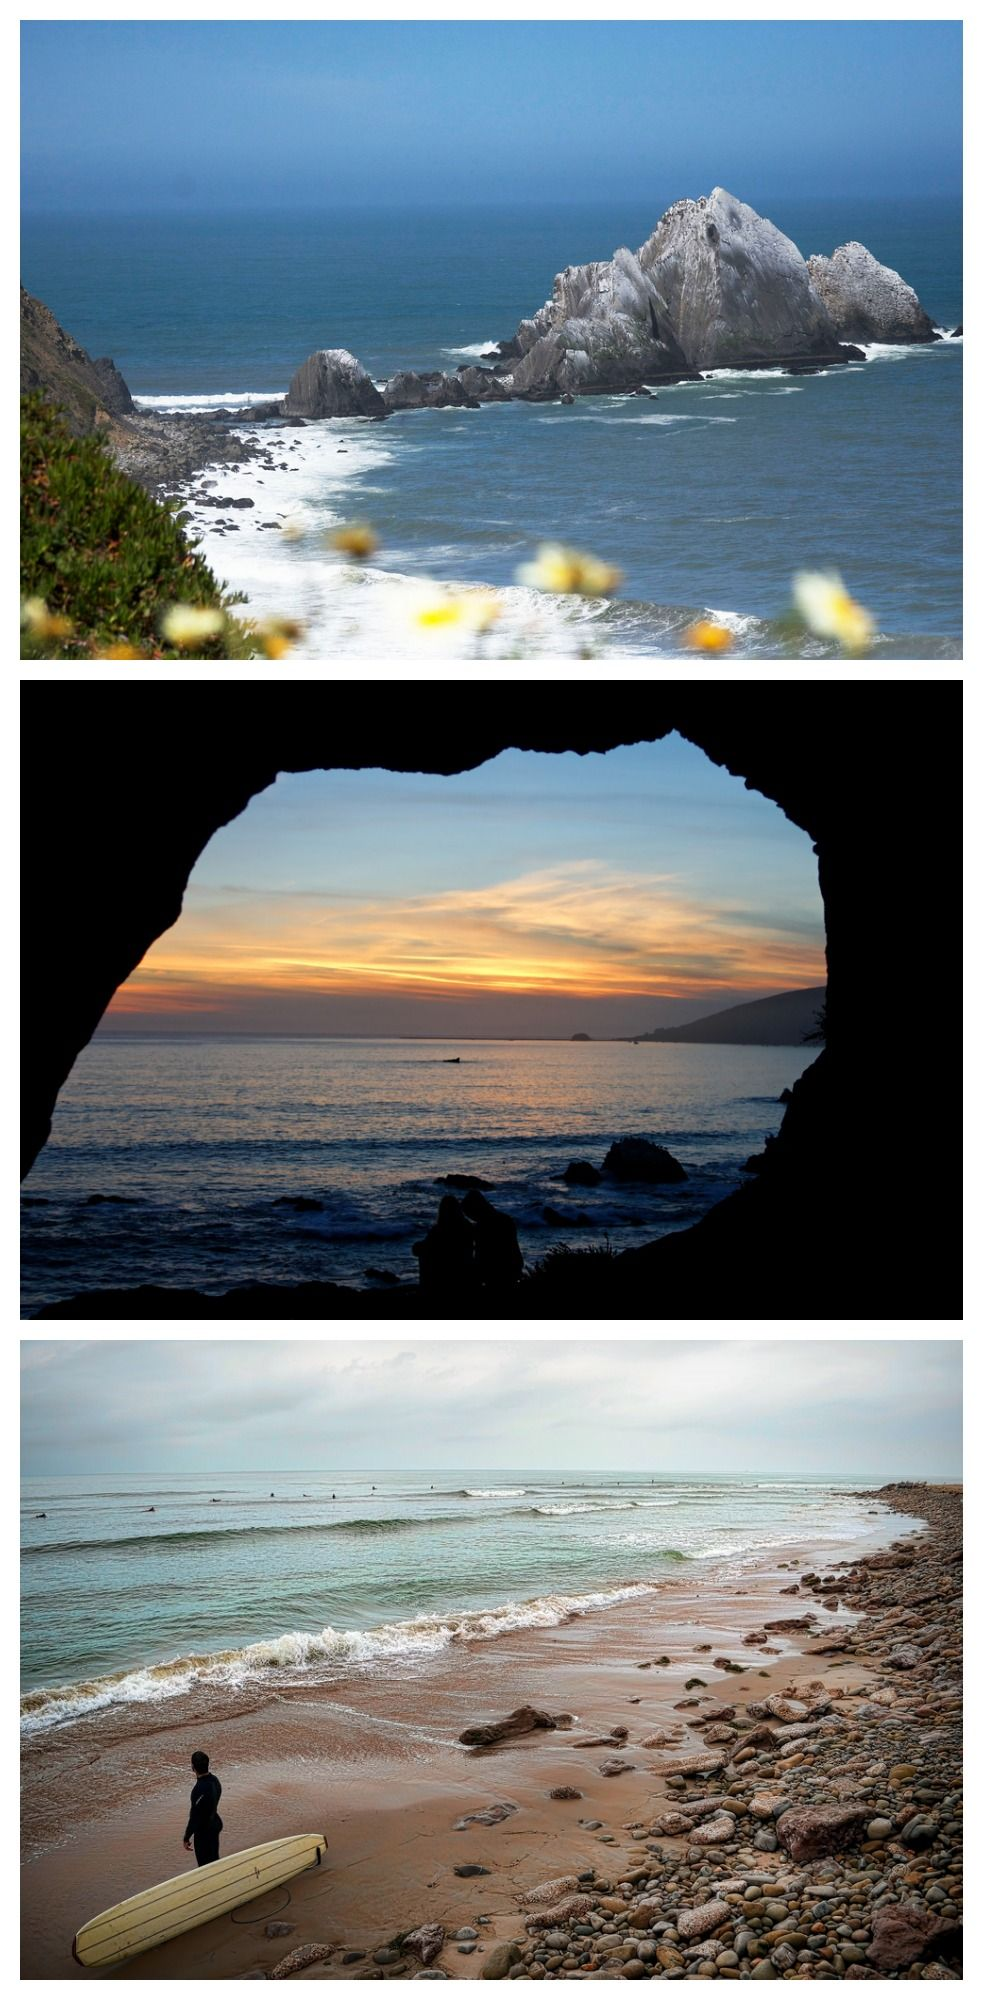 Beach Towns That Are Californias Best Kept Secrets California - 7 unforgettable backdrops on californias 17 mile drive